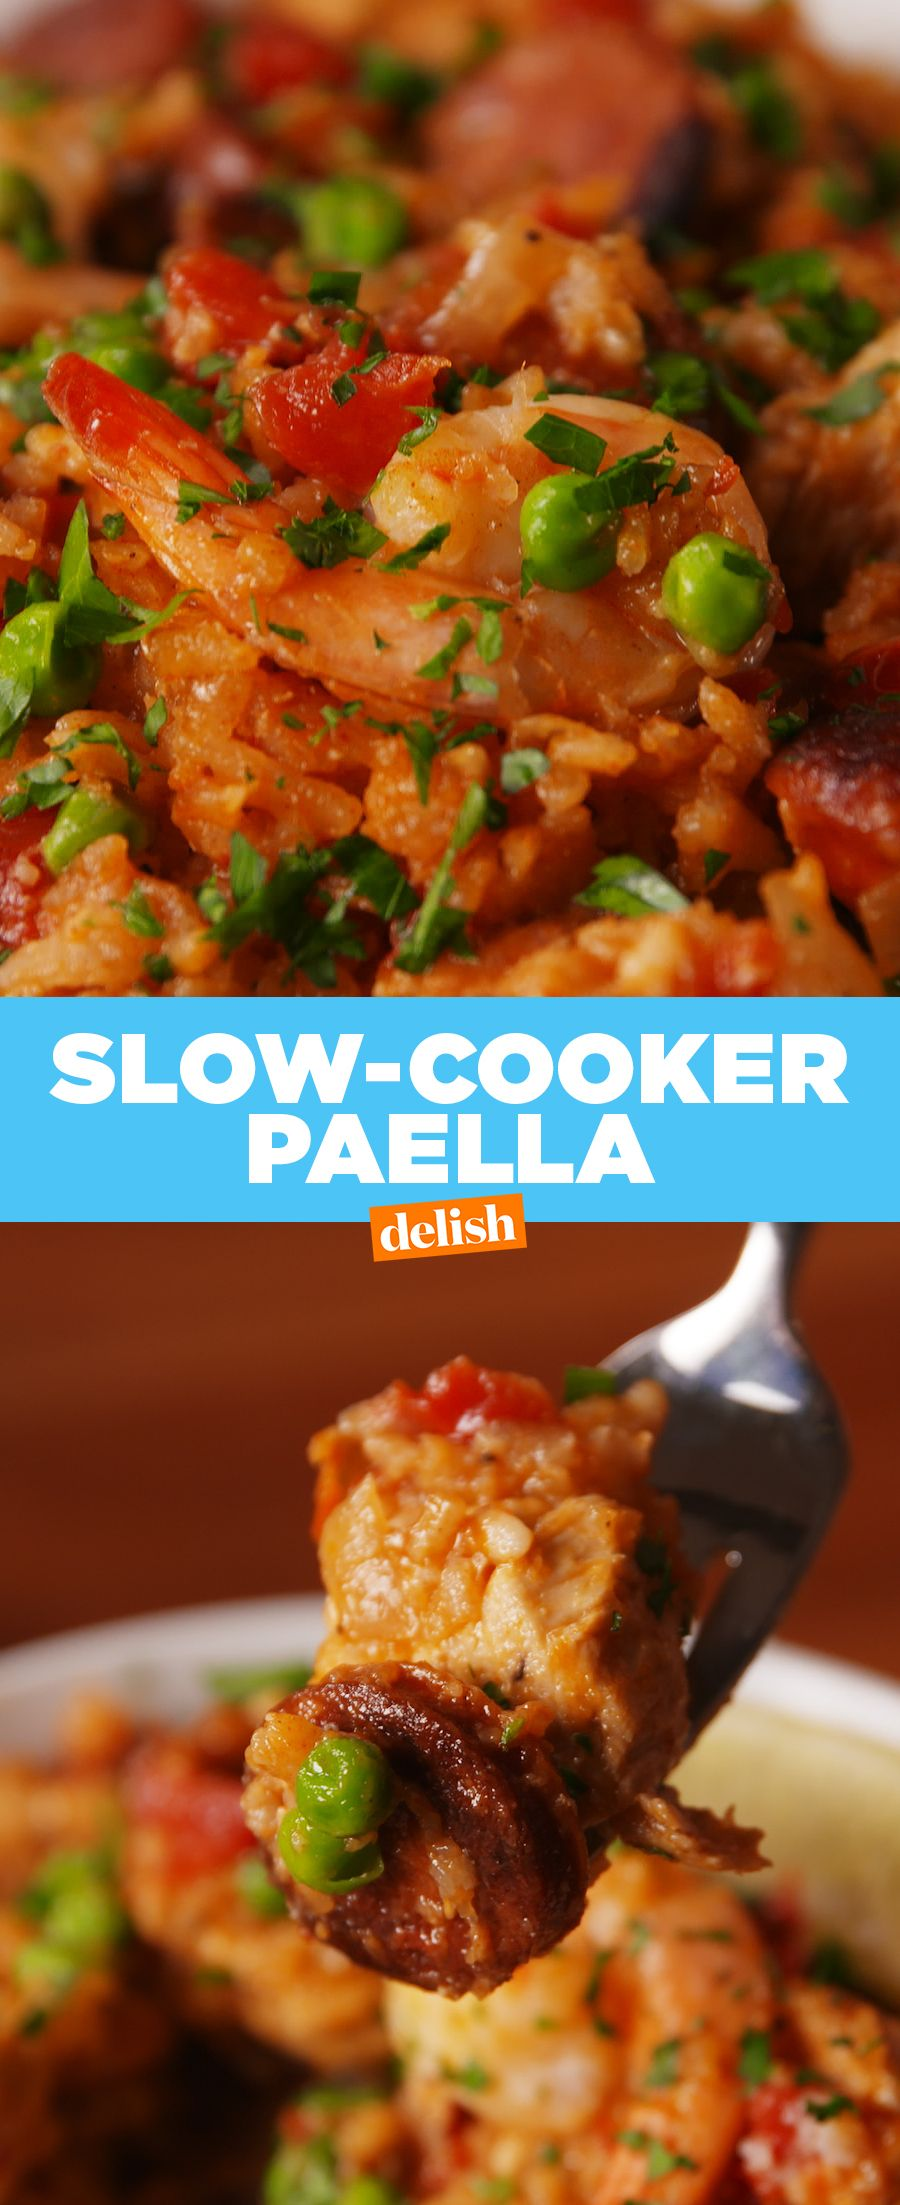 Forum on this topic: Slow Cooker Paella, slow-cooker-paella/